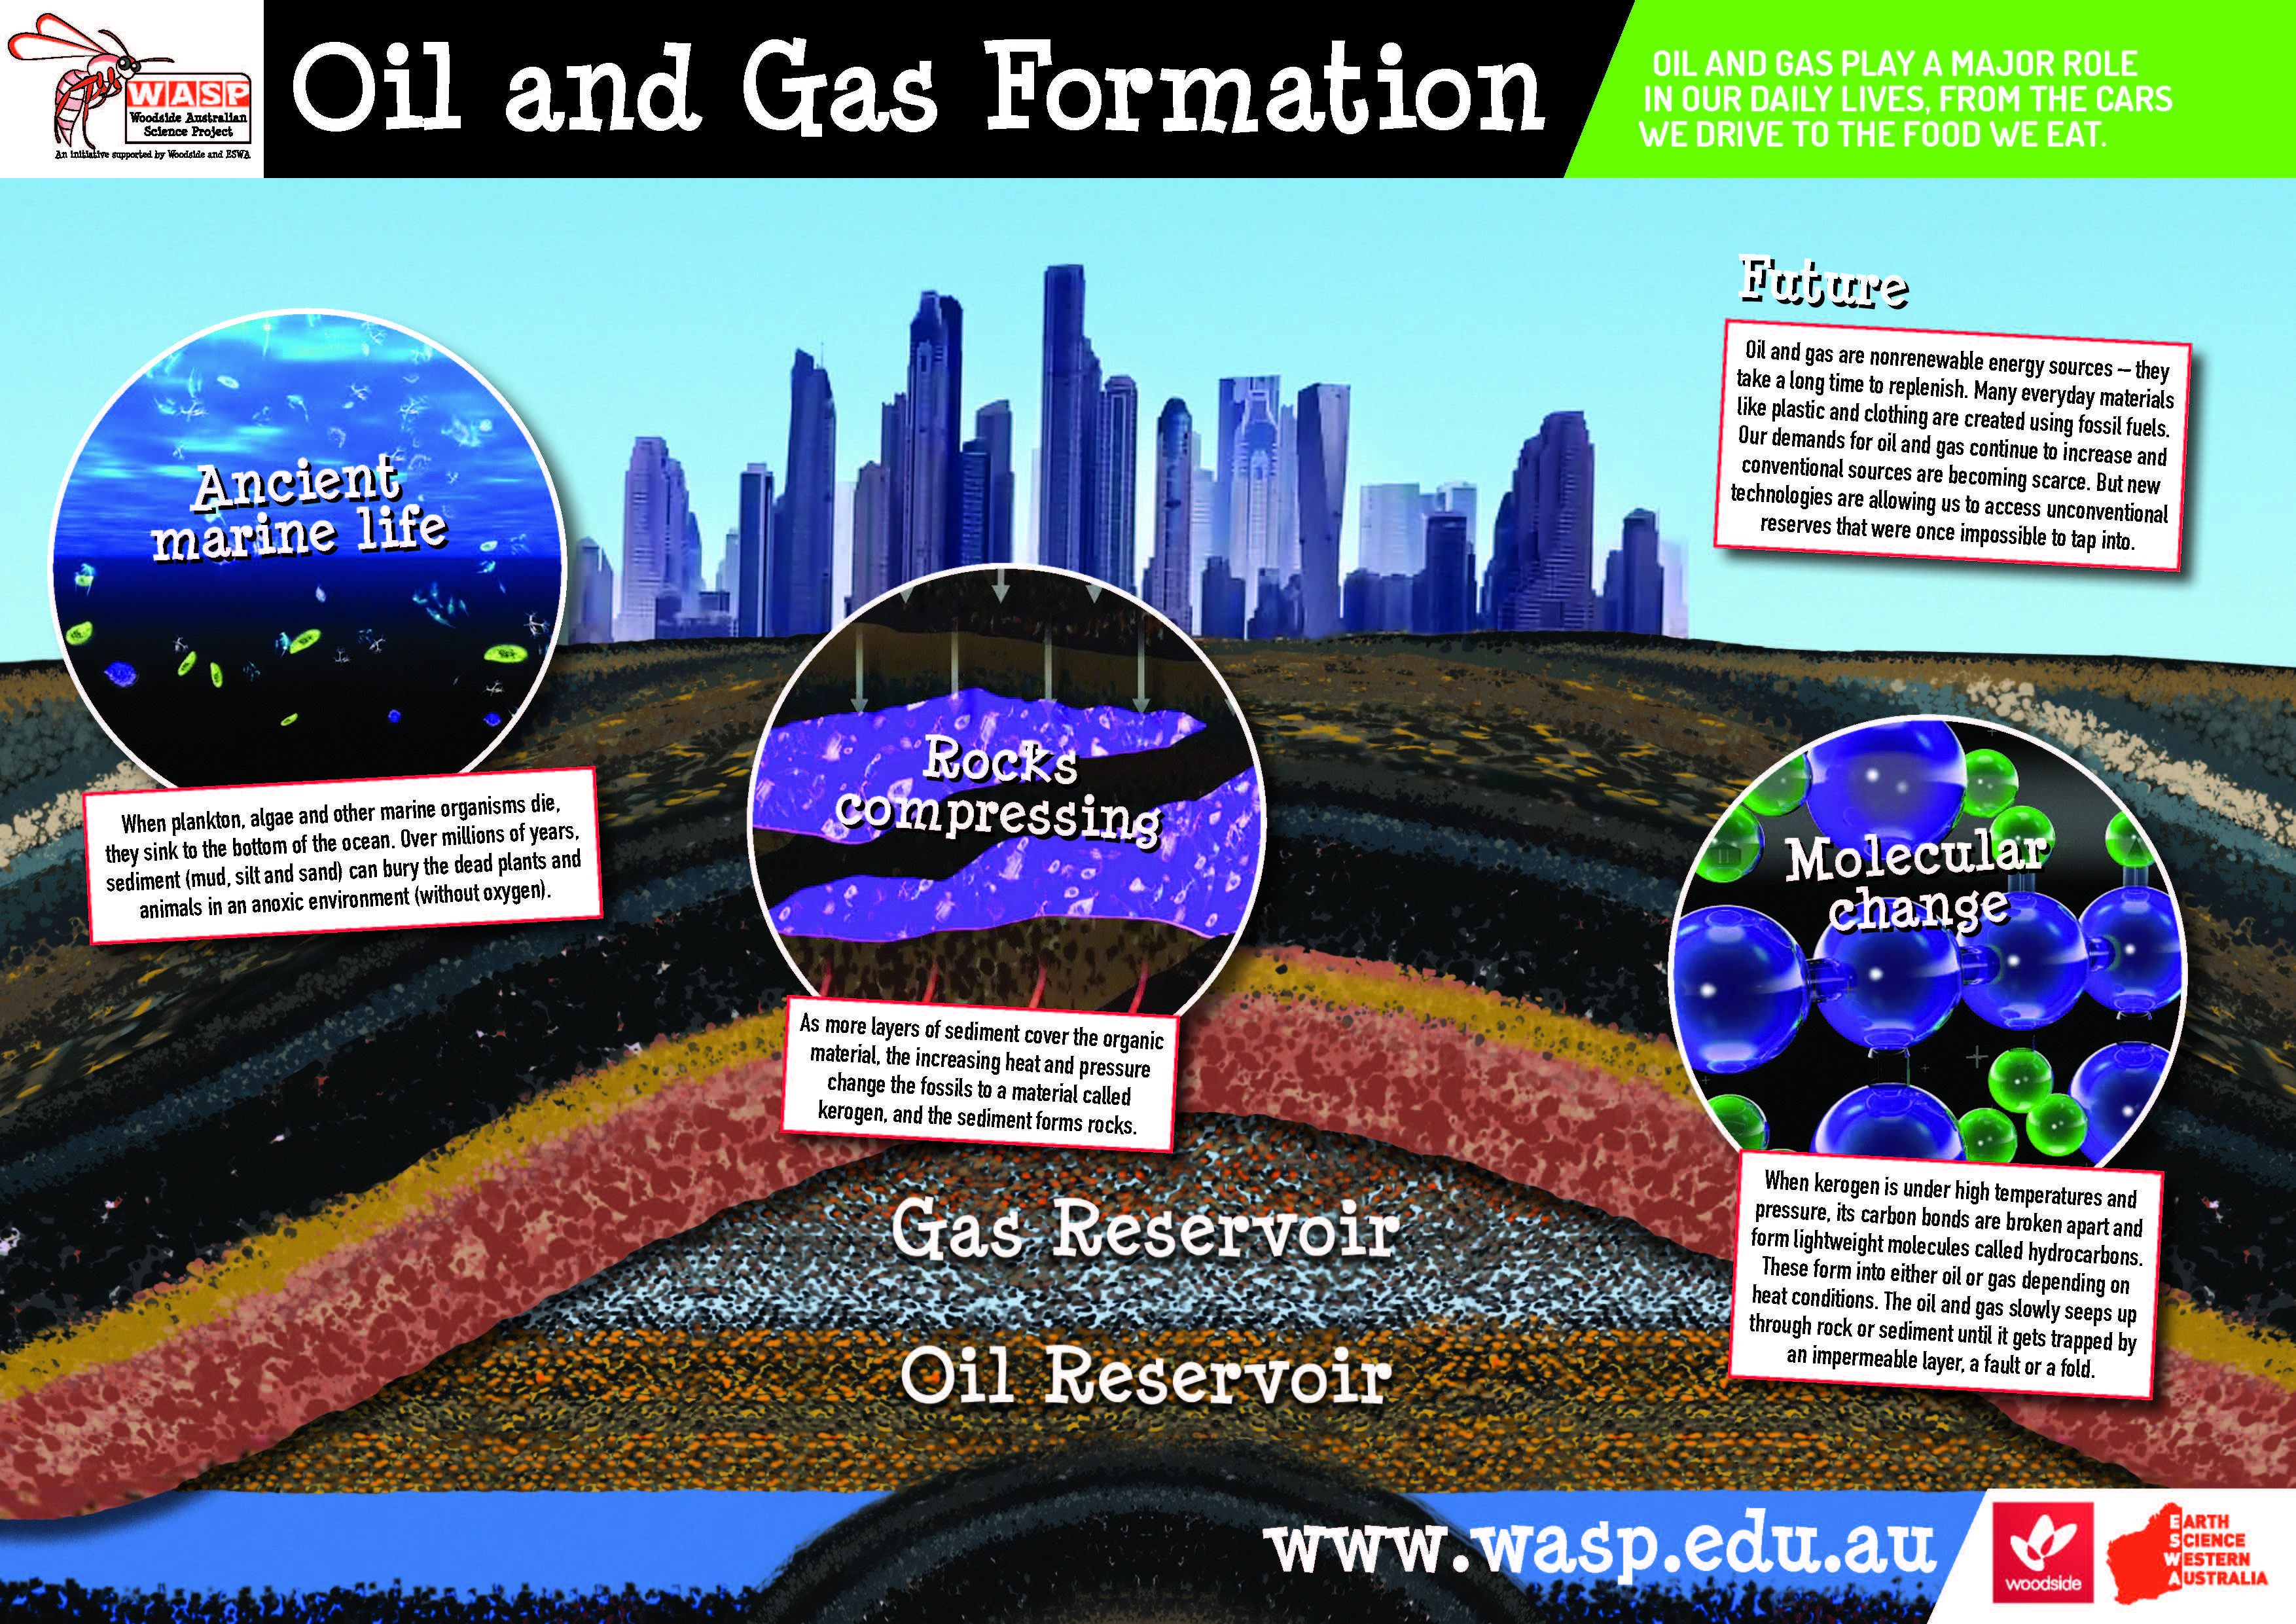 Oil and Gas Formation Poster